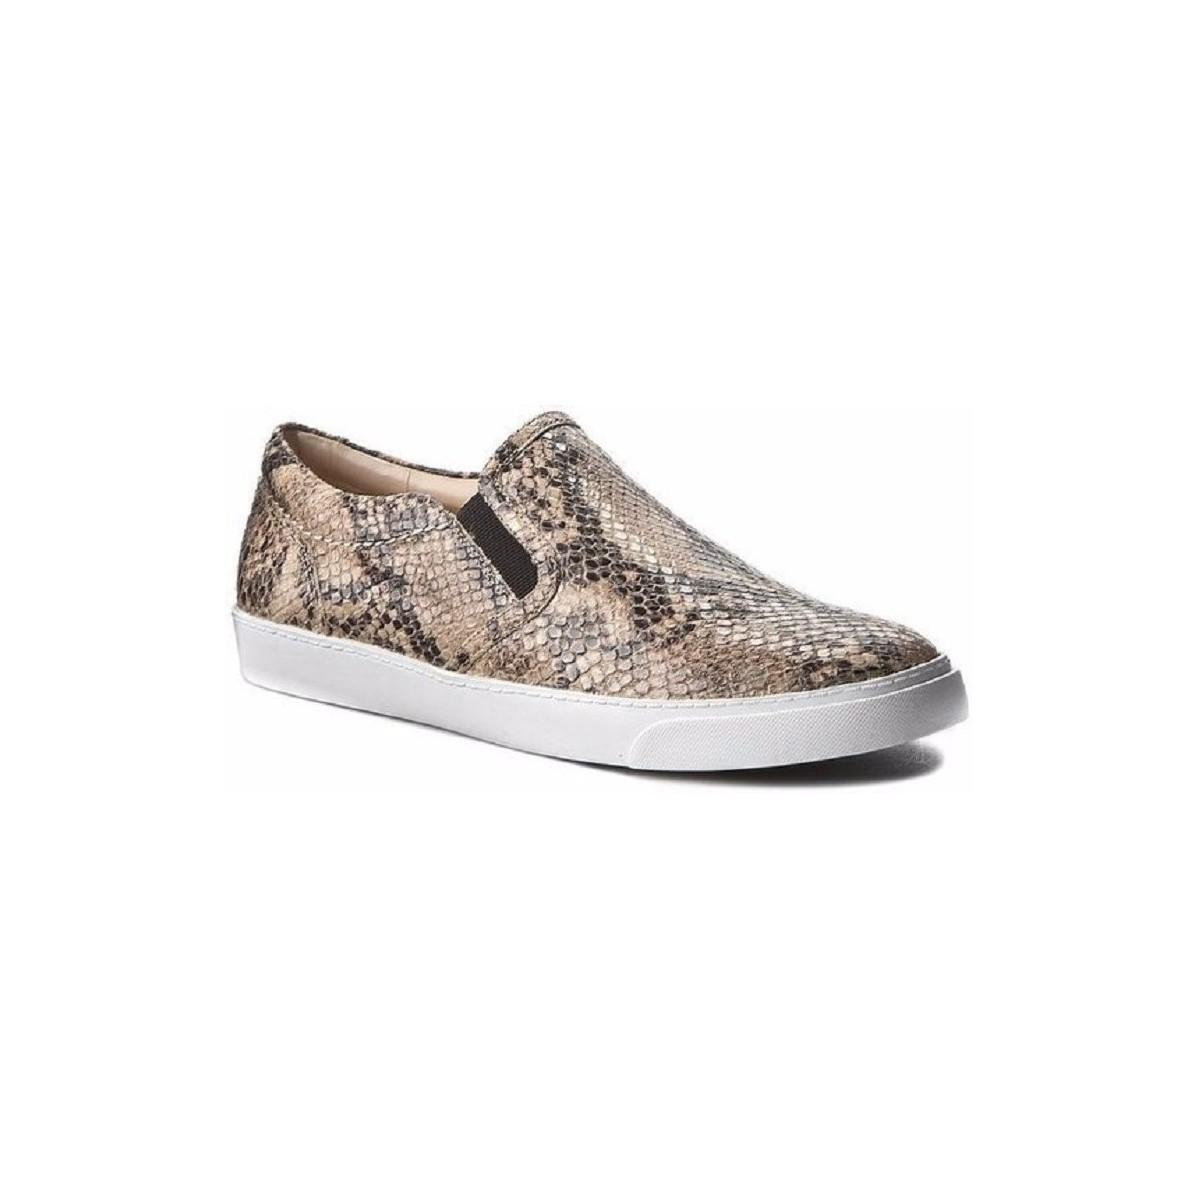 ed63831b Clarks Glove Puppet Women's Shoes (trainers) In Beige in Natural - Lyst